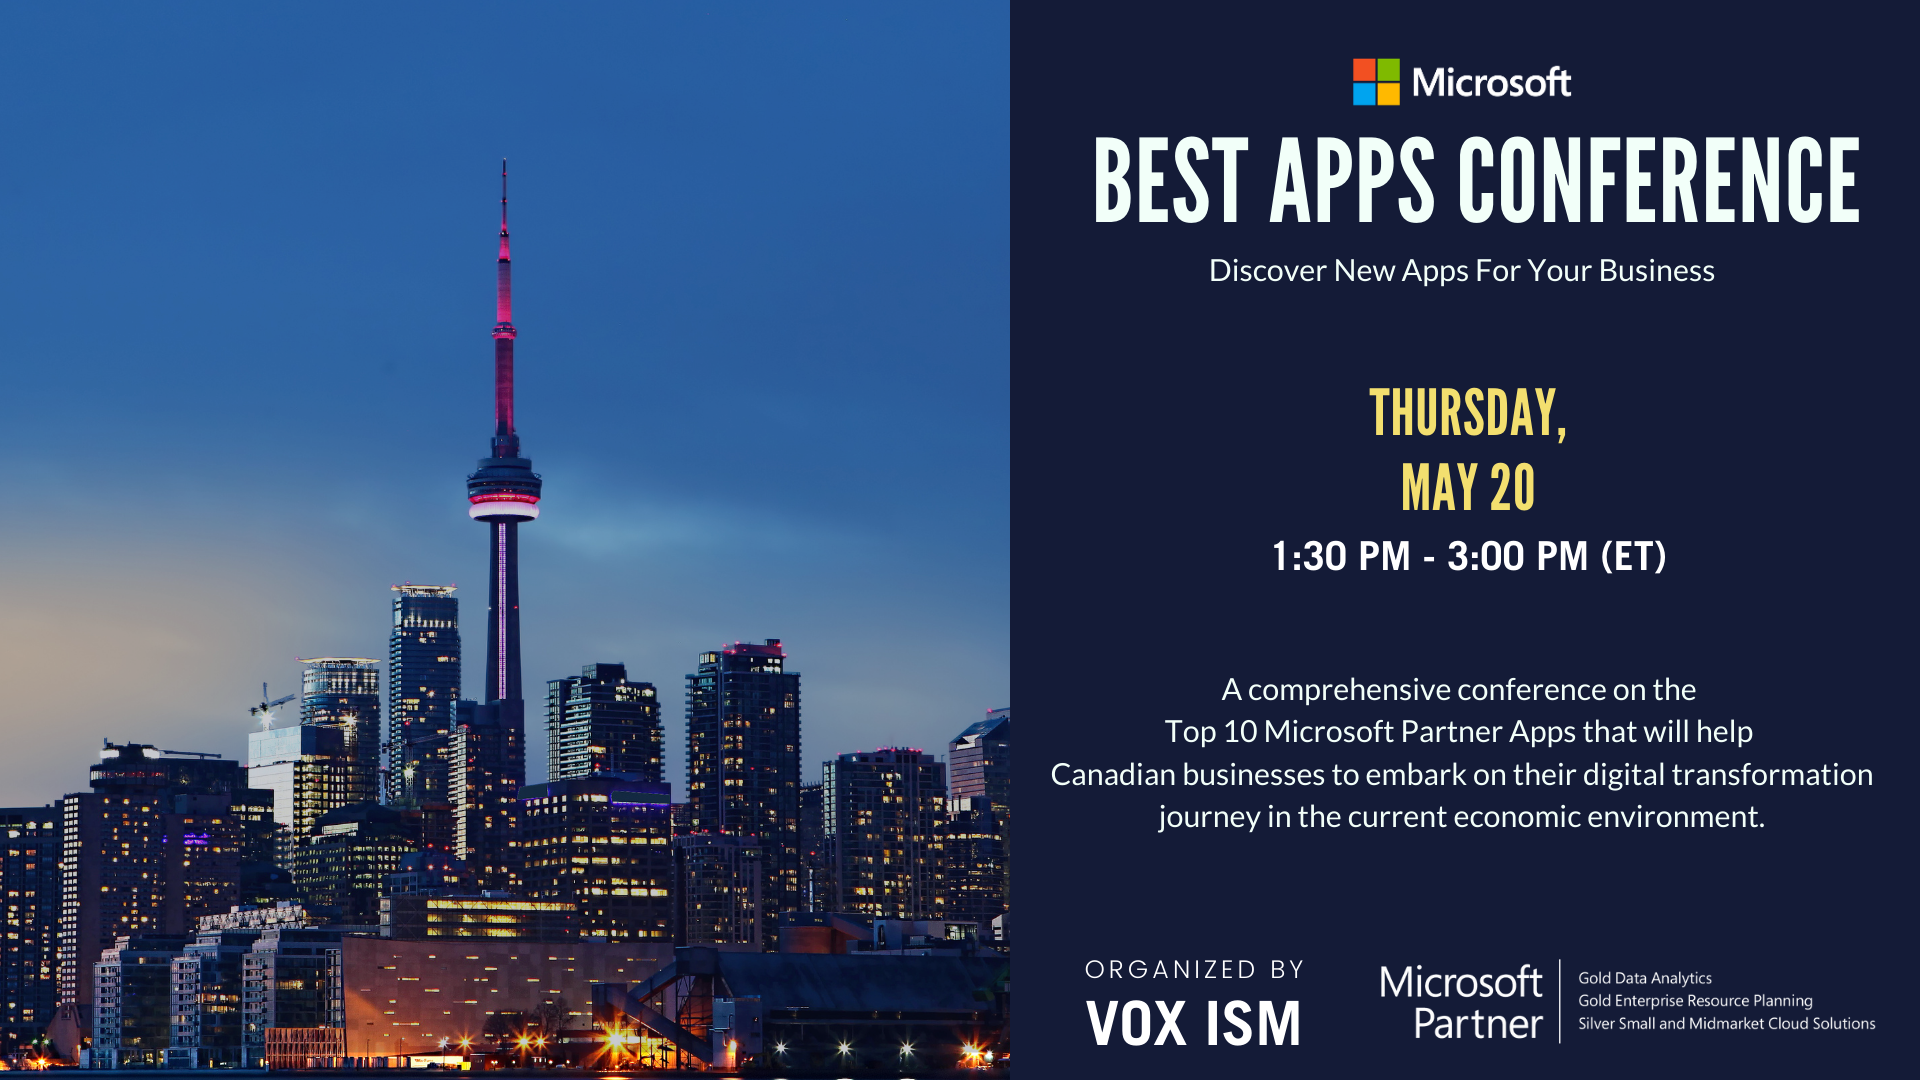 Microsoft Best Apps Conference - VOX ISM